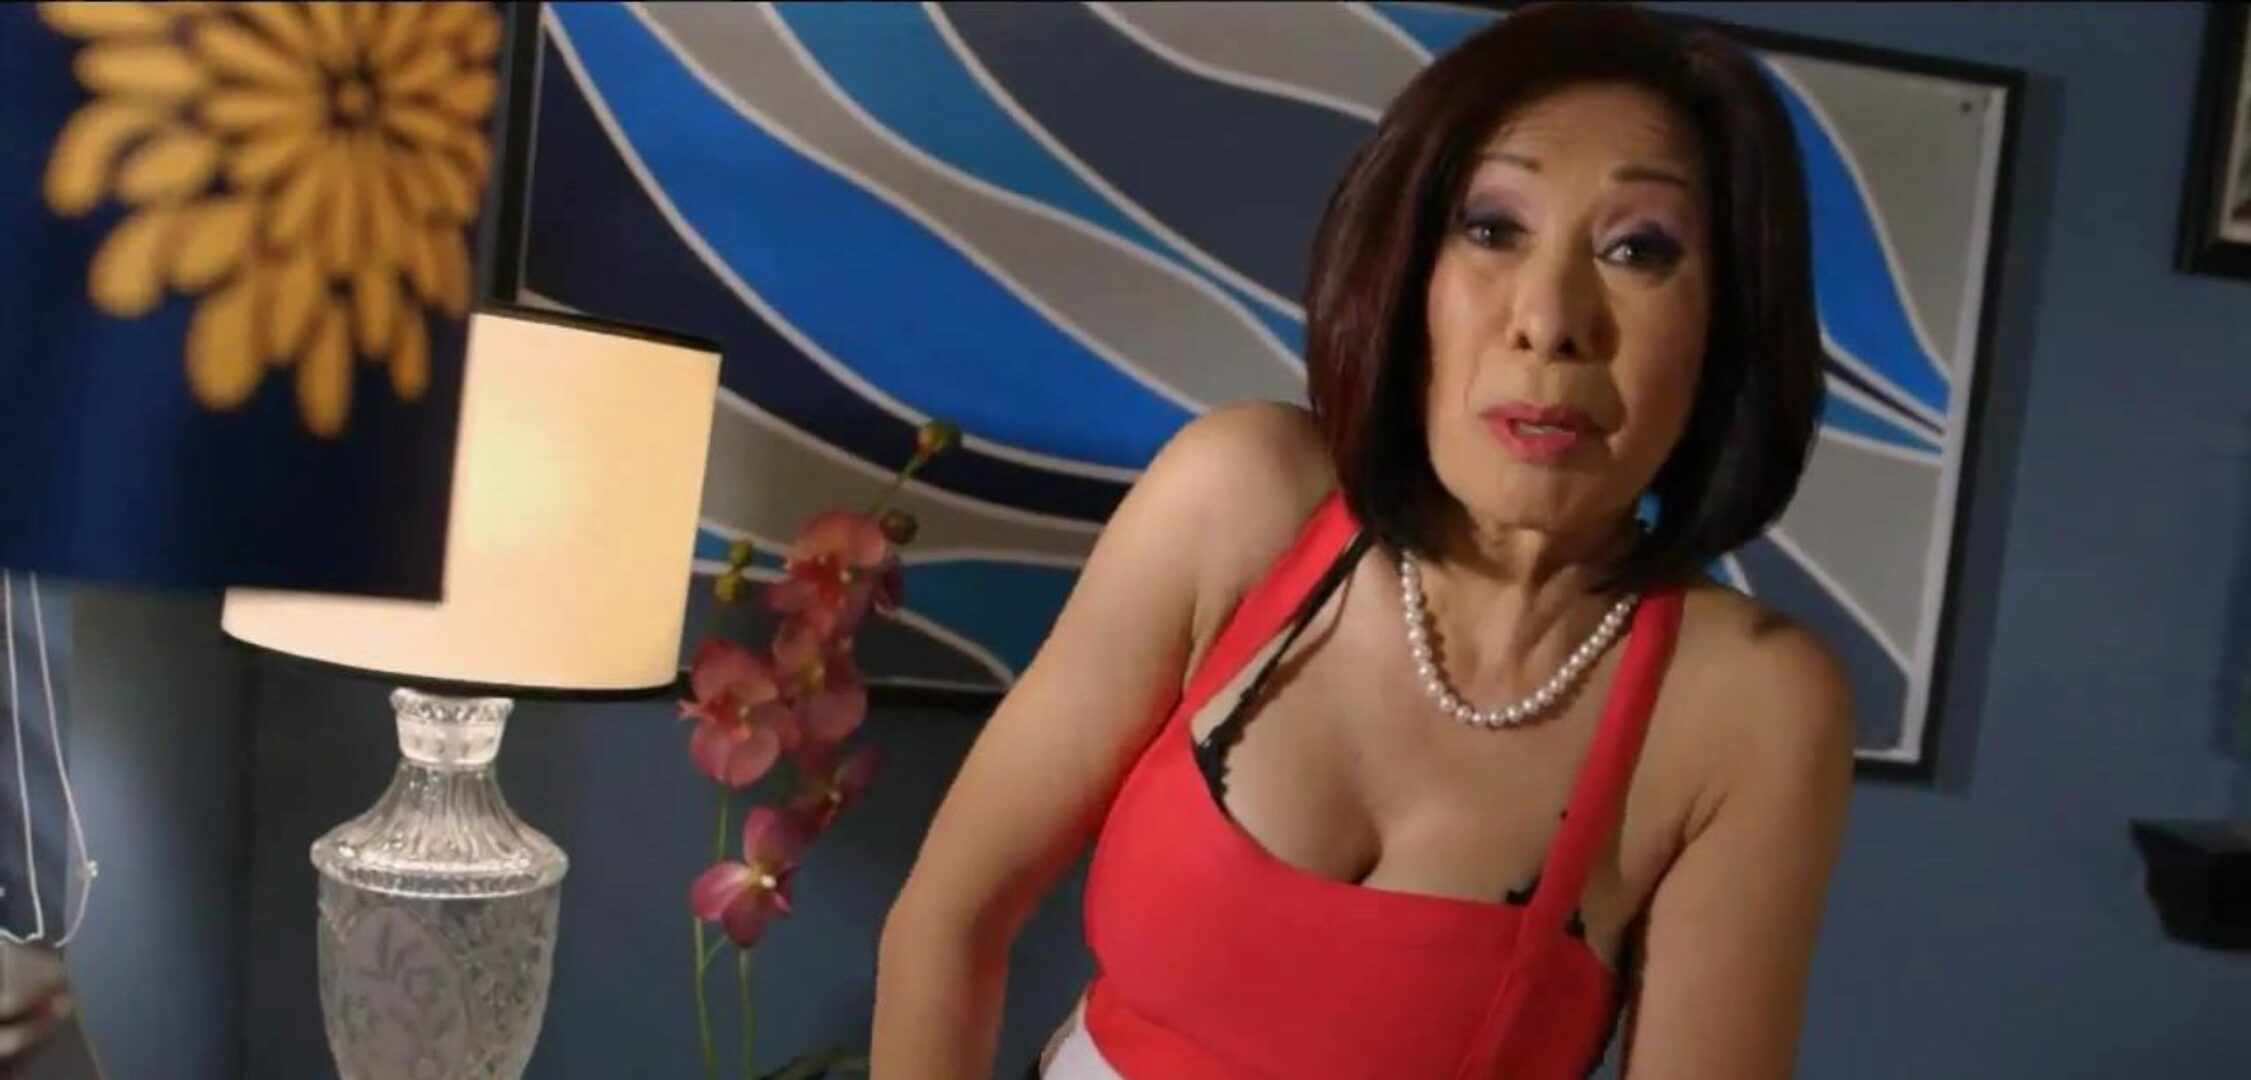 Asian Granny Kim Anh receives Her Asshole Pump Fucked &... Watch Asian Granny Kim Anh receives Her Asshole Pump Fucked & Jizzed episode on xHamster - the ultimate selection of free-for-all Asshole Tube & Asian Beeg HD porno tube clips